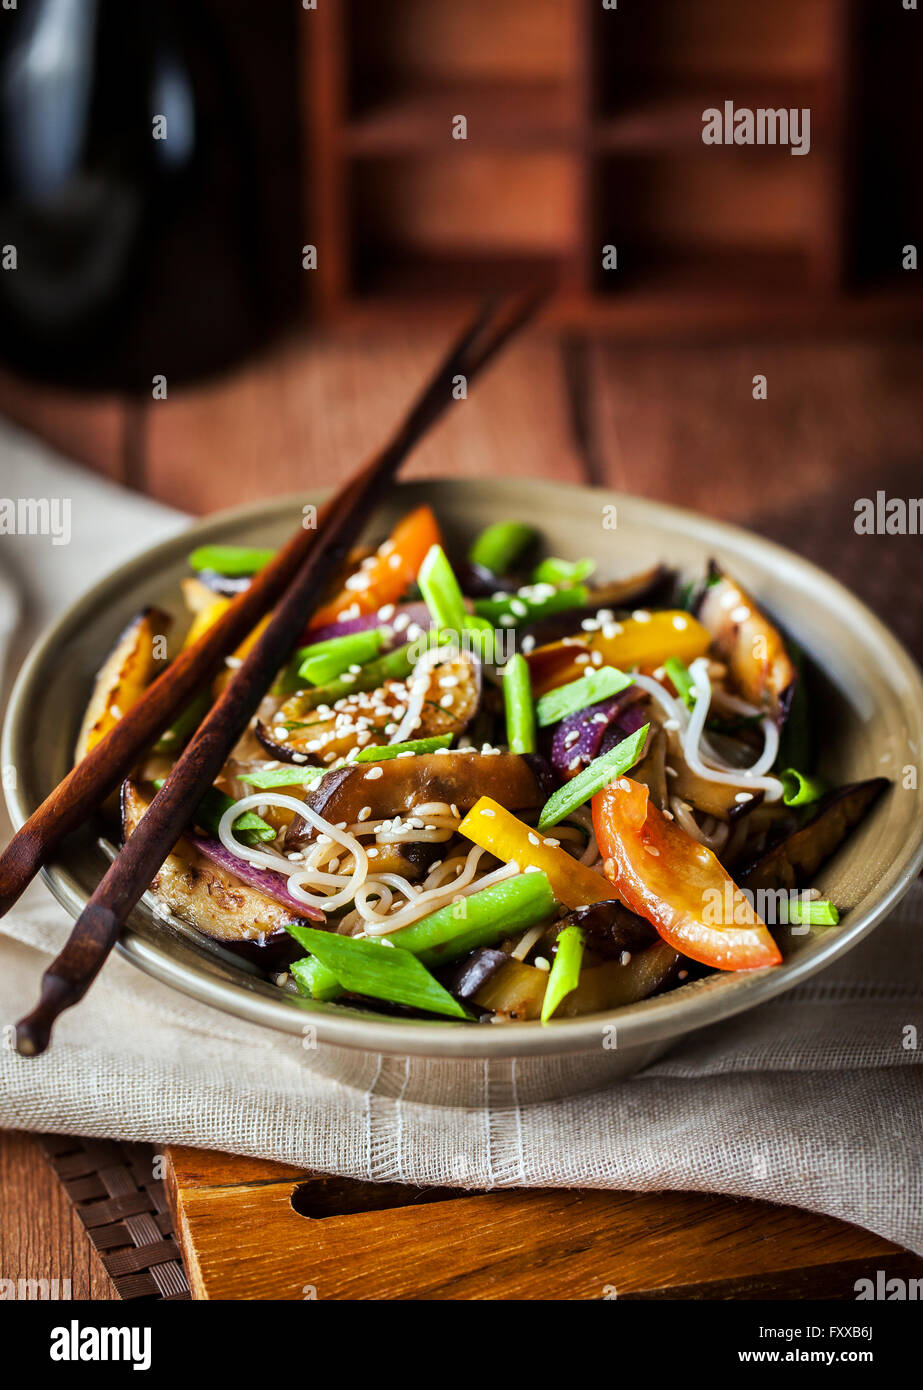 Delicious asian rice noodles with vegetables (wok) - Stock Image